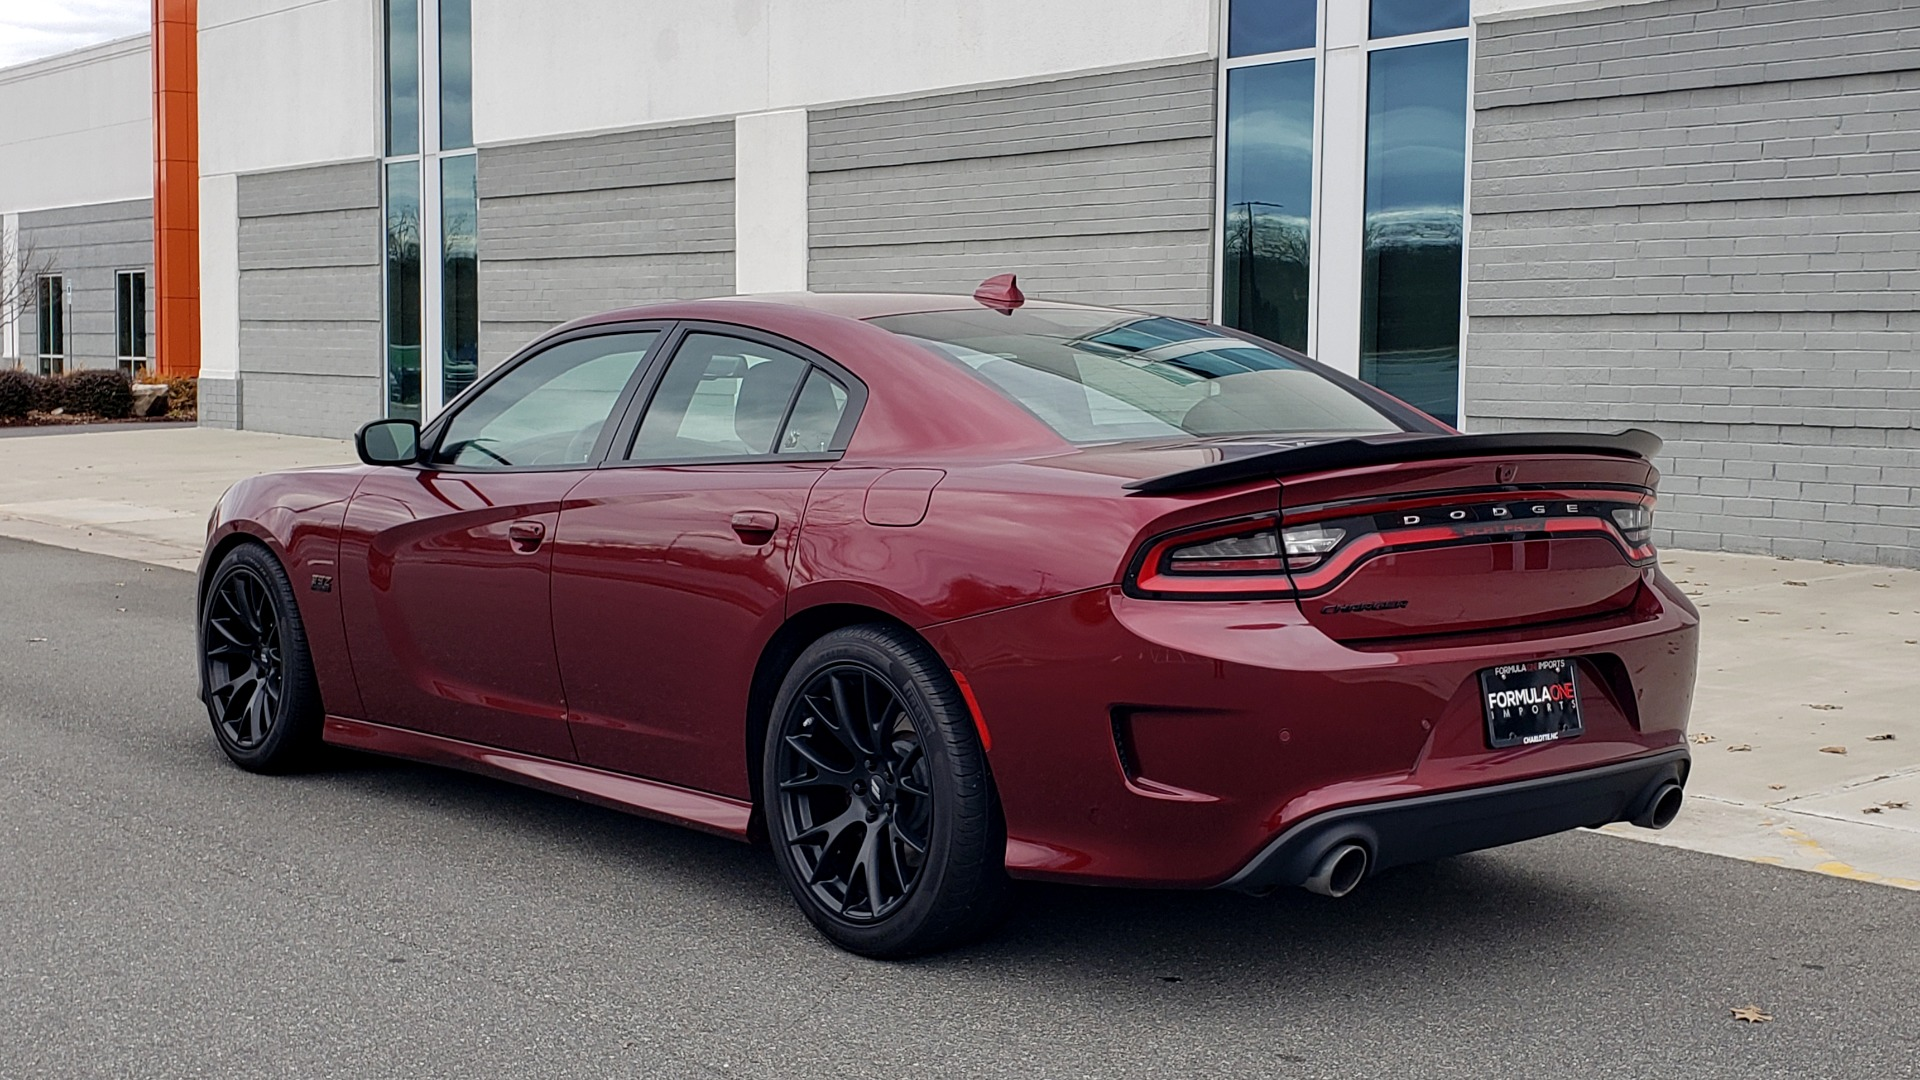 Used 2018 Dodge CHARGER R/T SCAT PACK / 6.4L 485HP / 8-SPD AUTO / HEATED / REARVIEW for sale Sold at Formula Imports in Charlotte NC 28227 4